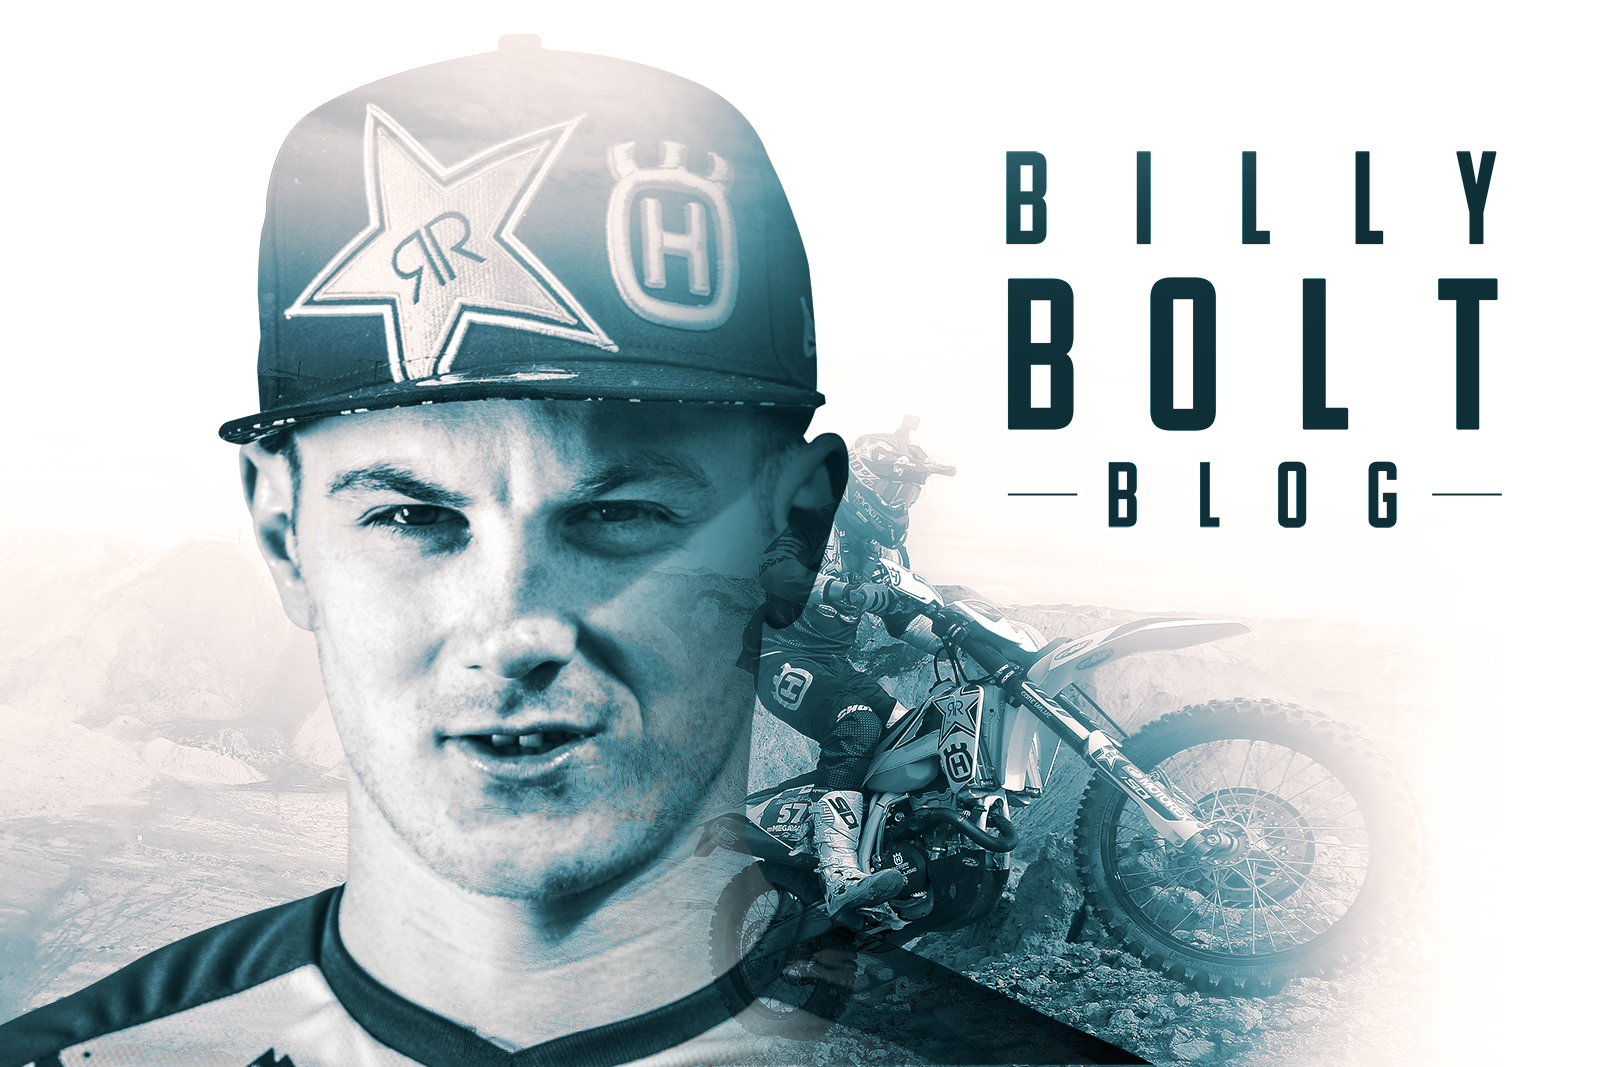 Blog: Billy Bolt - Getting ready for SuperEnduro